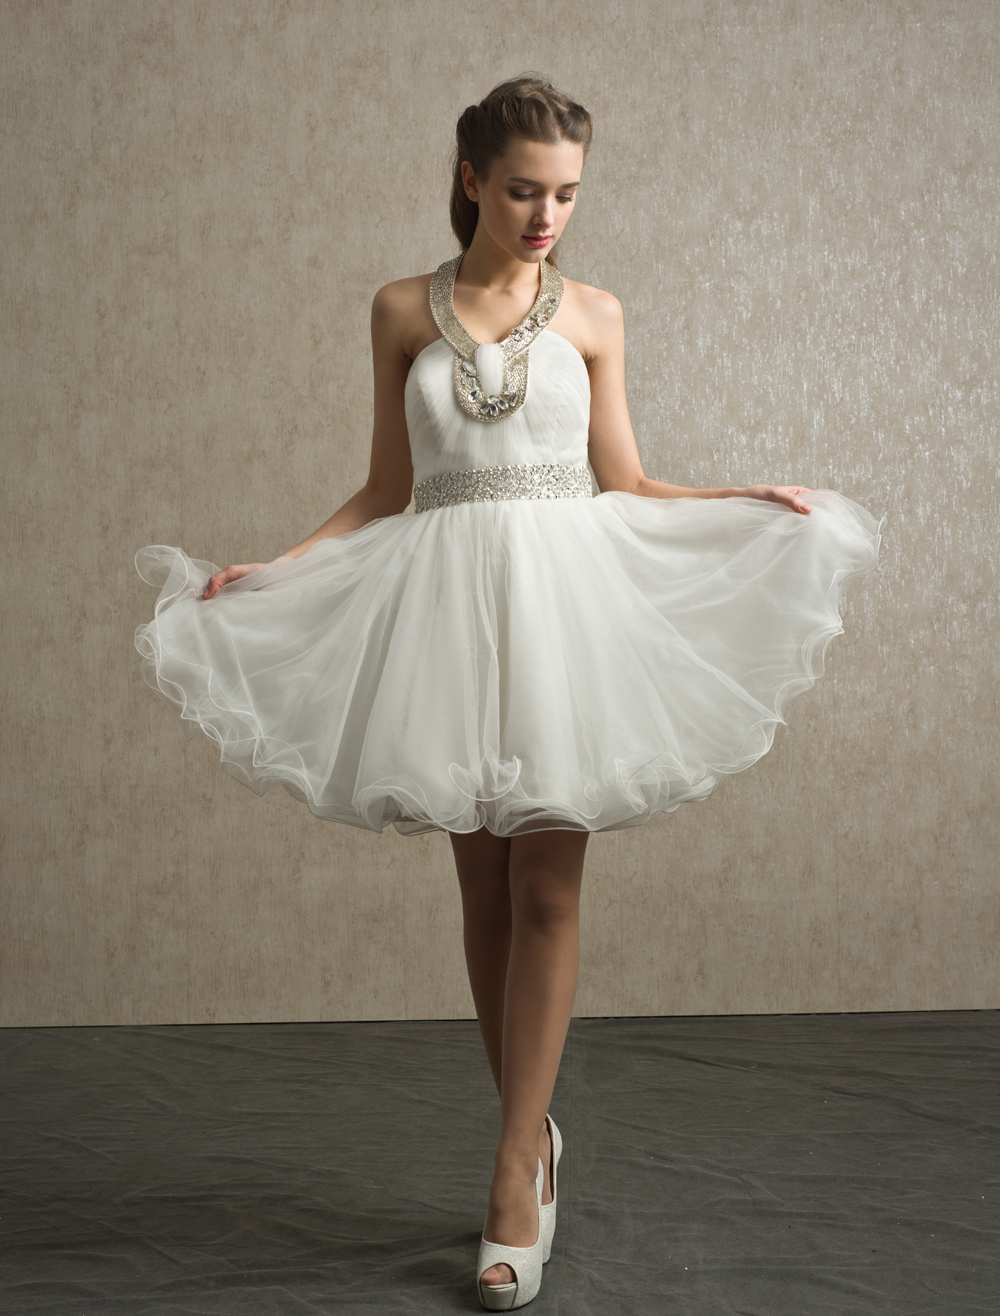 Ivory Rhinestone Tulle A-line Knee-Length Bridesmaid Dress with Pretty Halter Neck